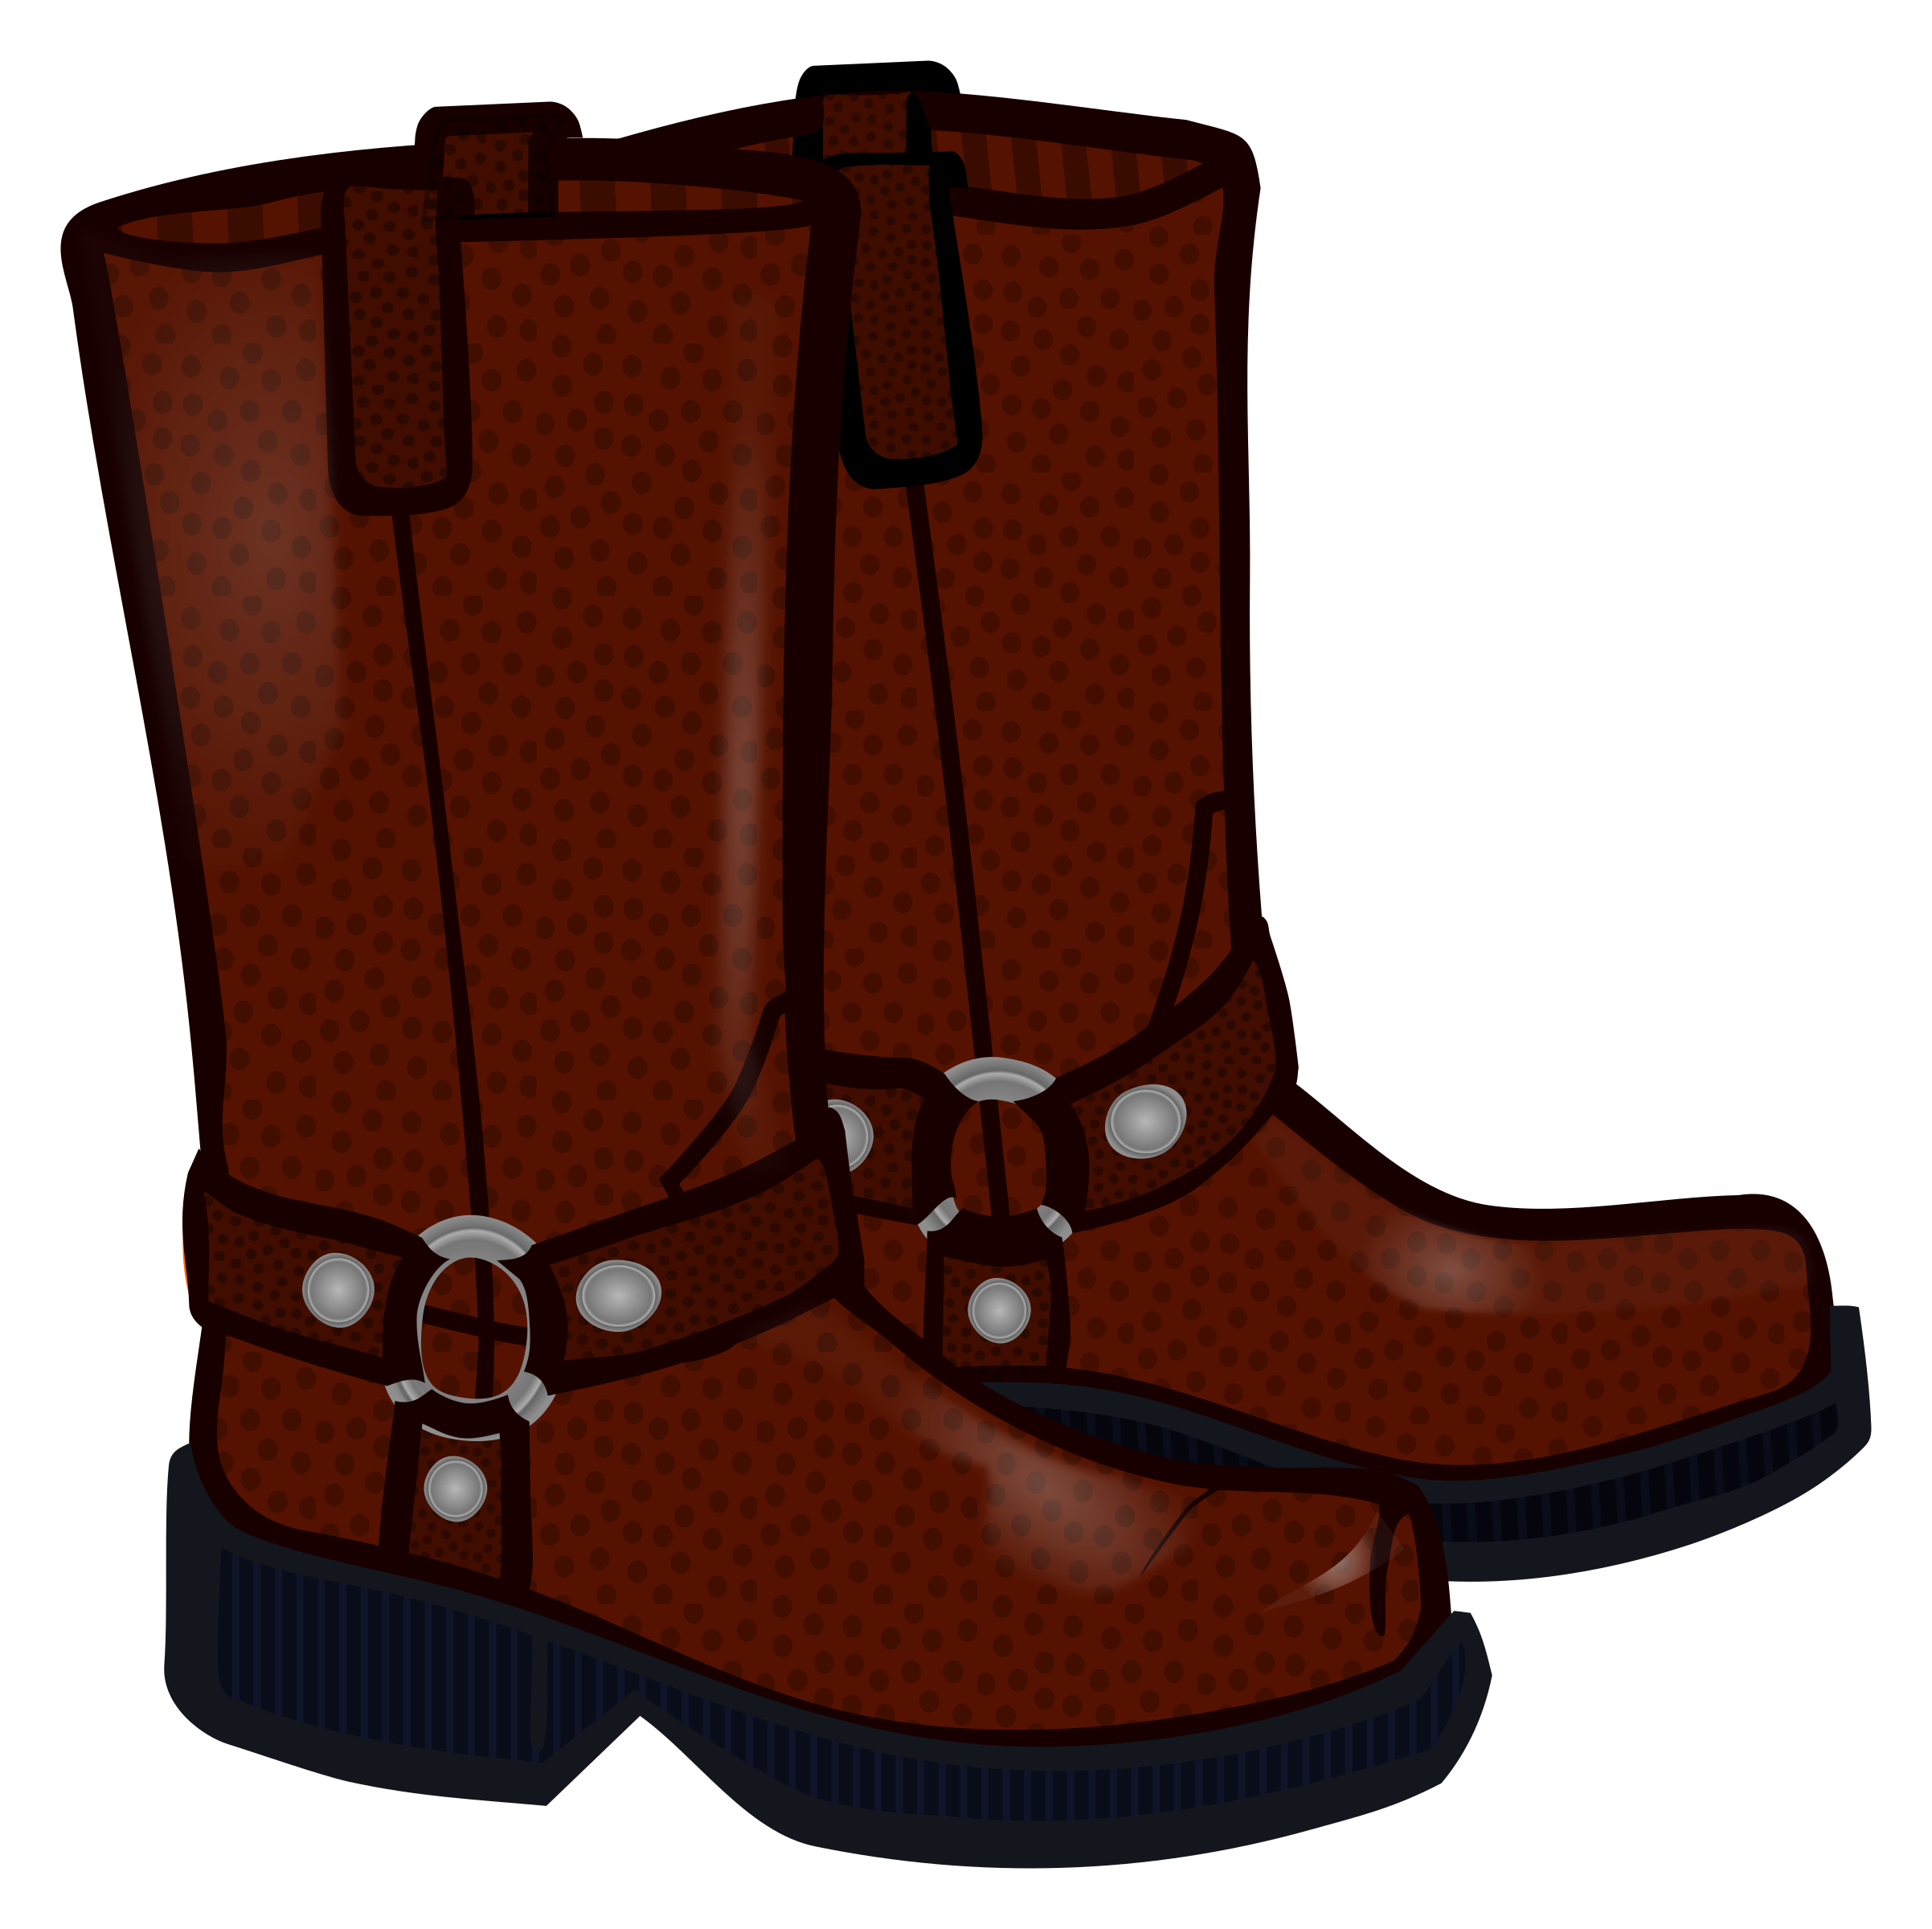 graphic royalty free download Coloured big image png. Boots clipart.